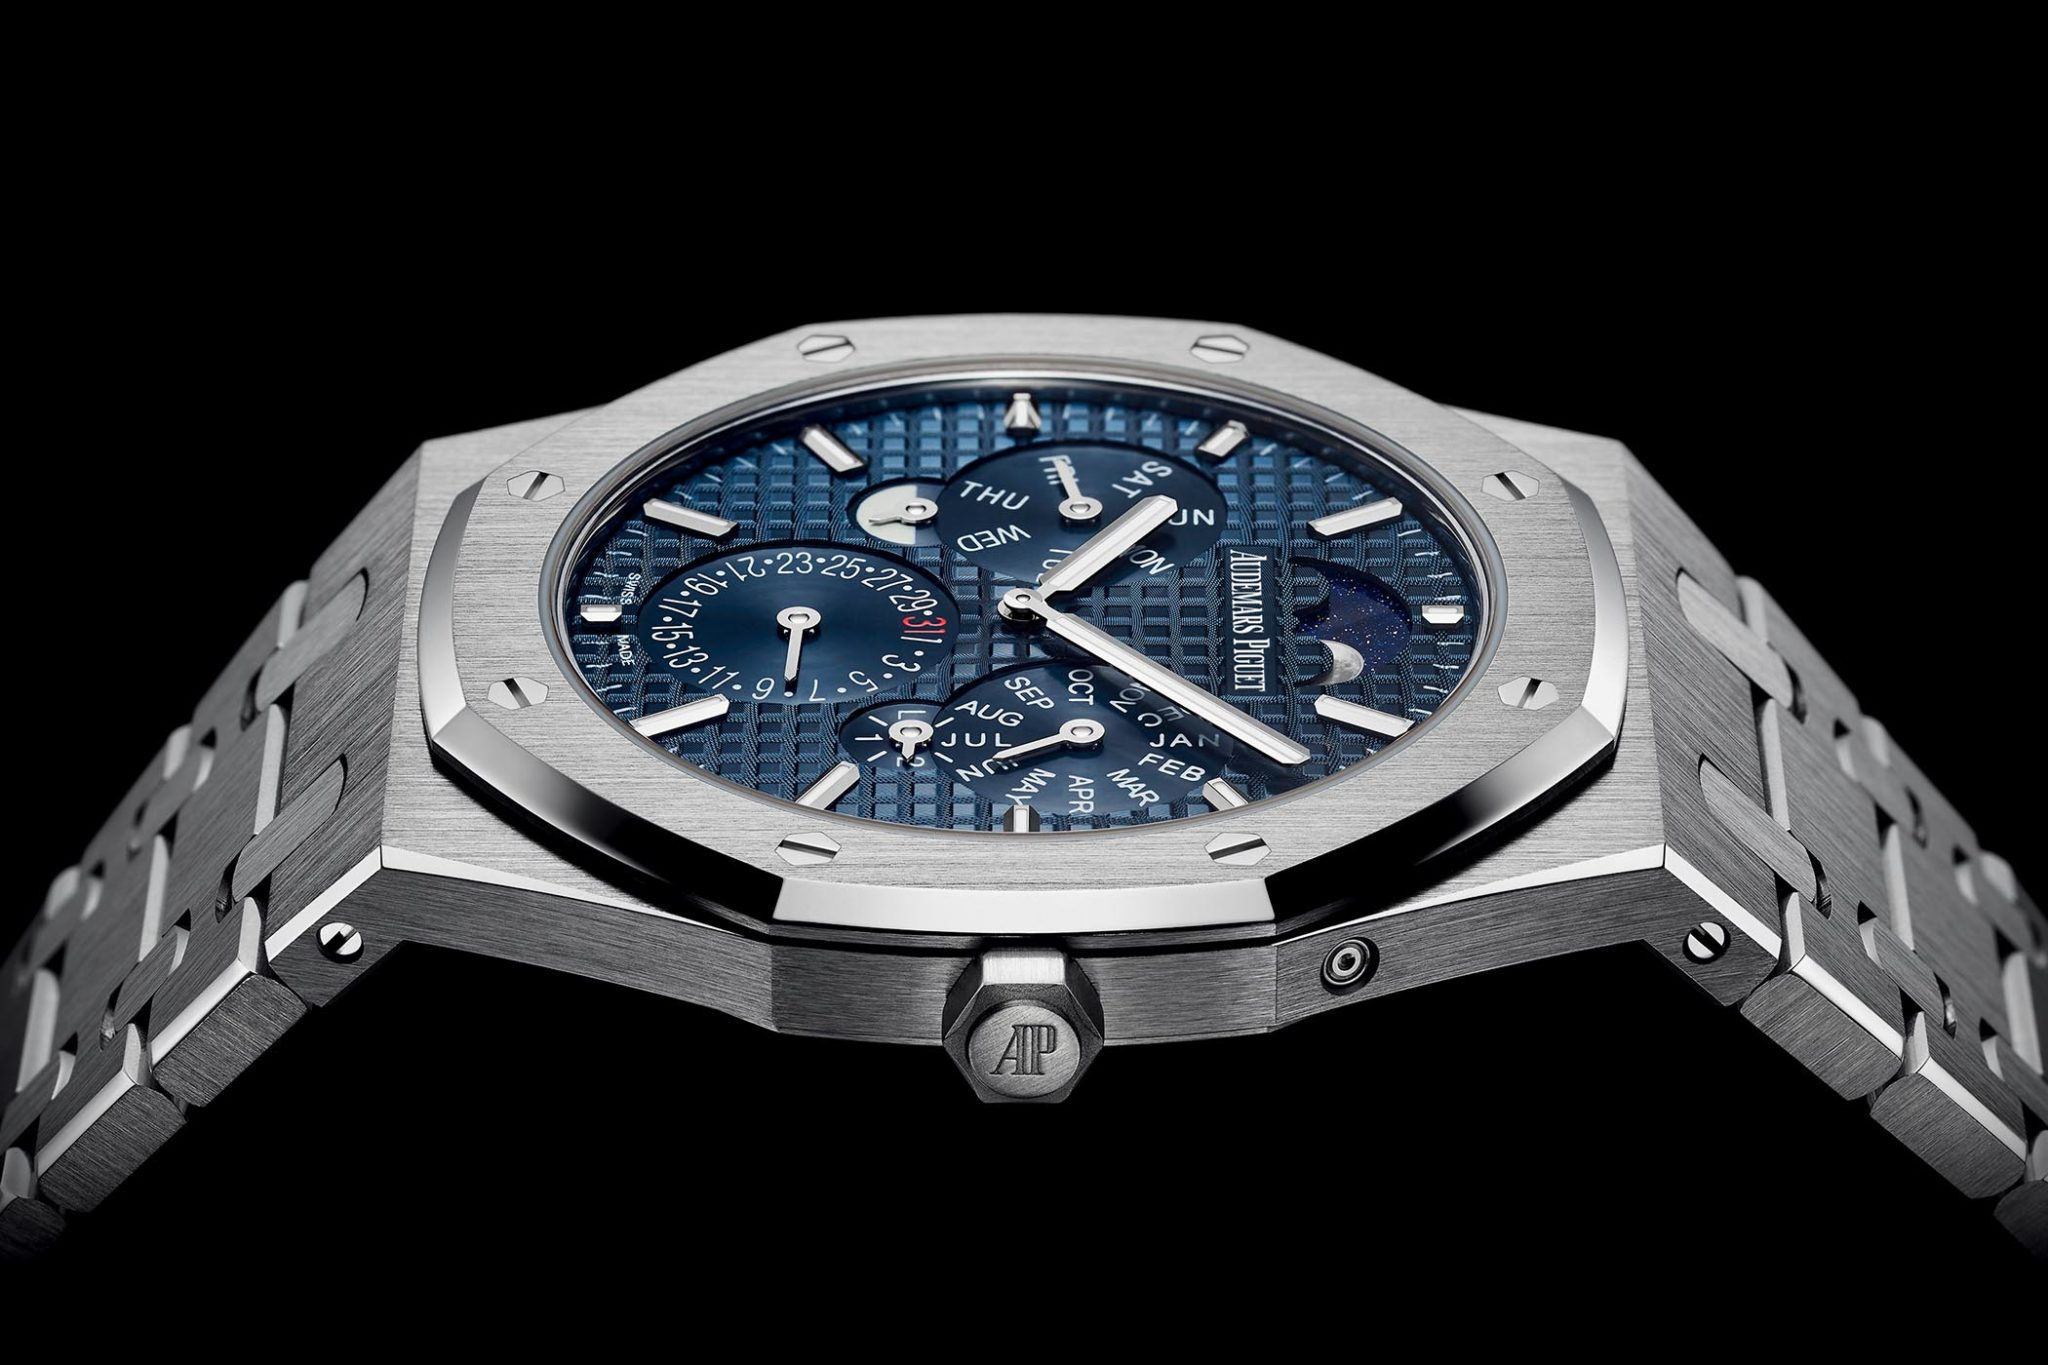 sell my audemars piguet royal oak watch